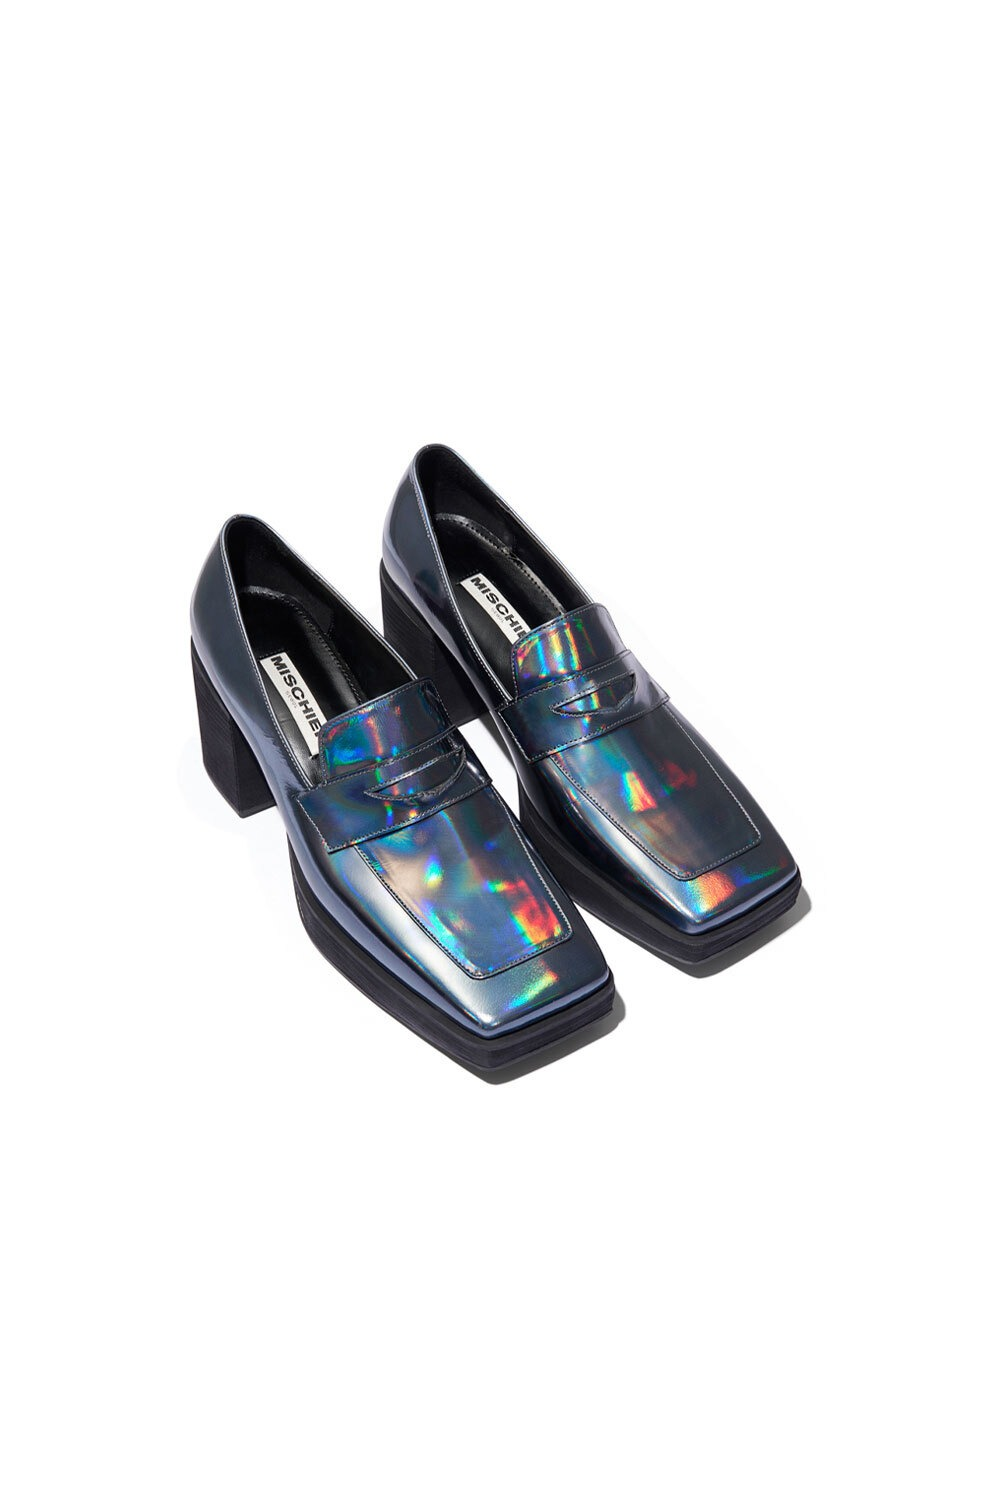 PROJECT MAGO_HOLOGRAPHIC PENNY LOAFER HEELS_STONE BLUE